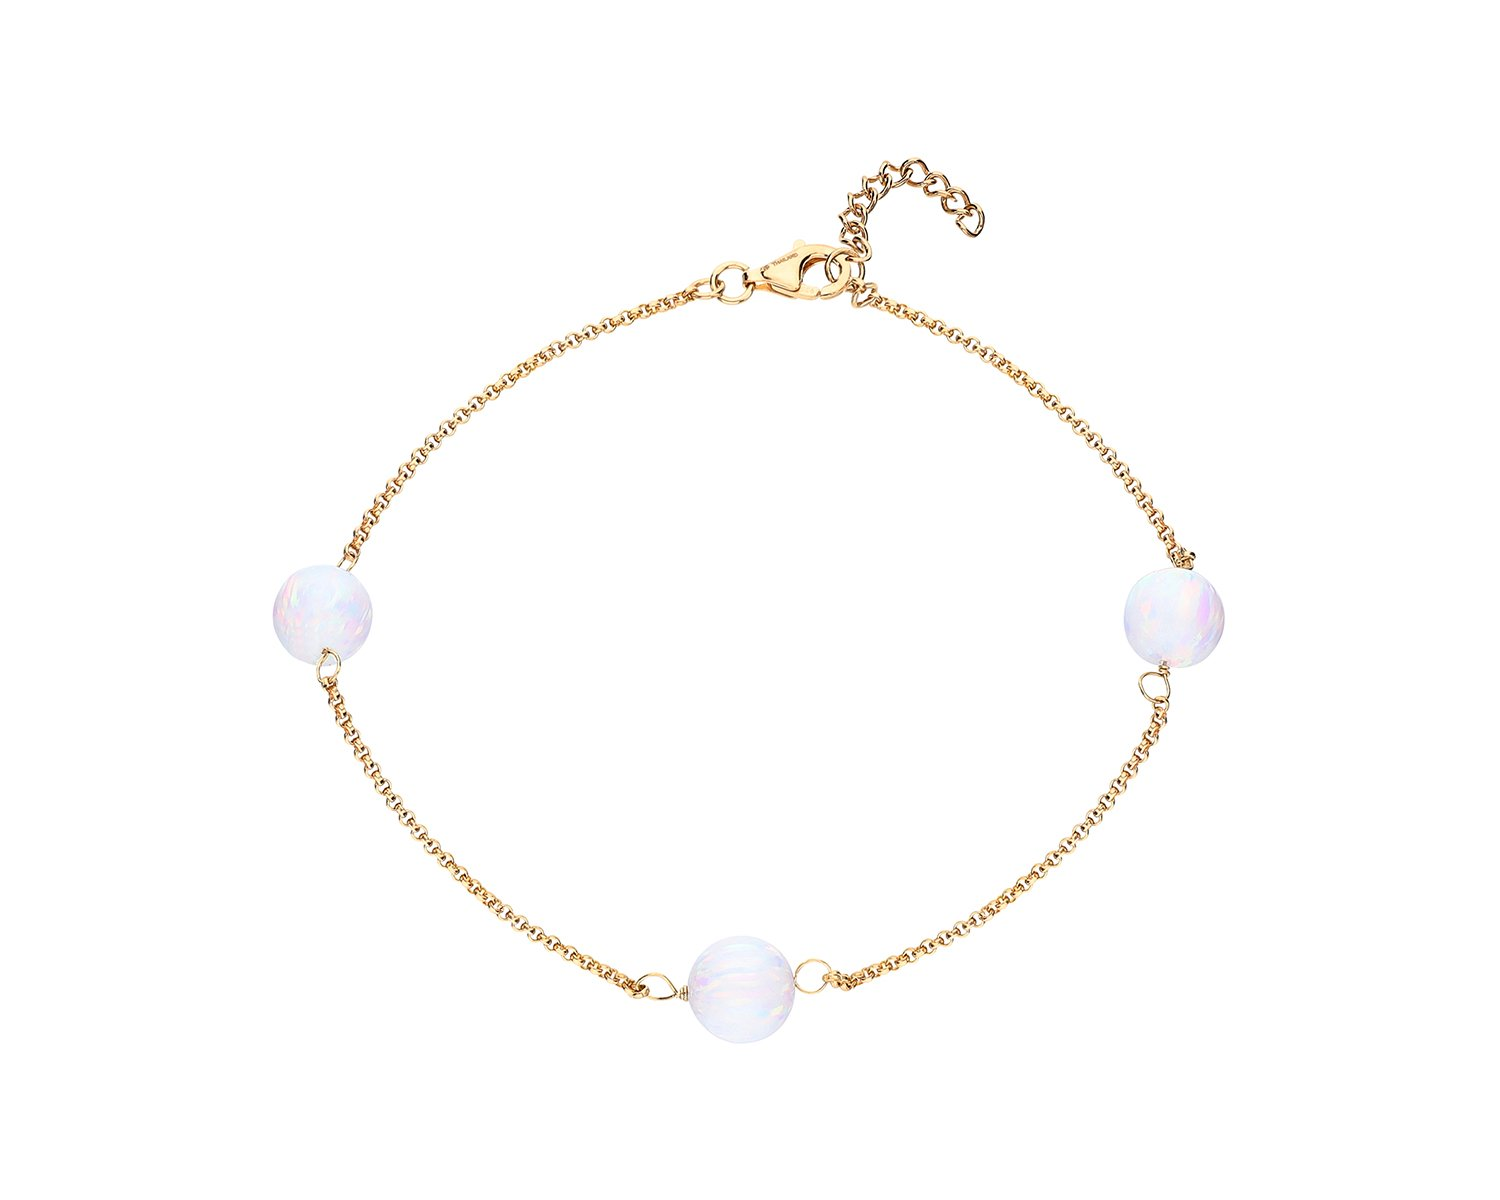 Gold Plated Sterling Silver Graduated Opal Chain Anklet